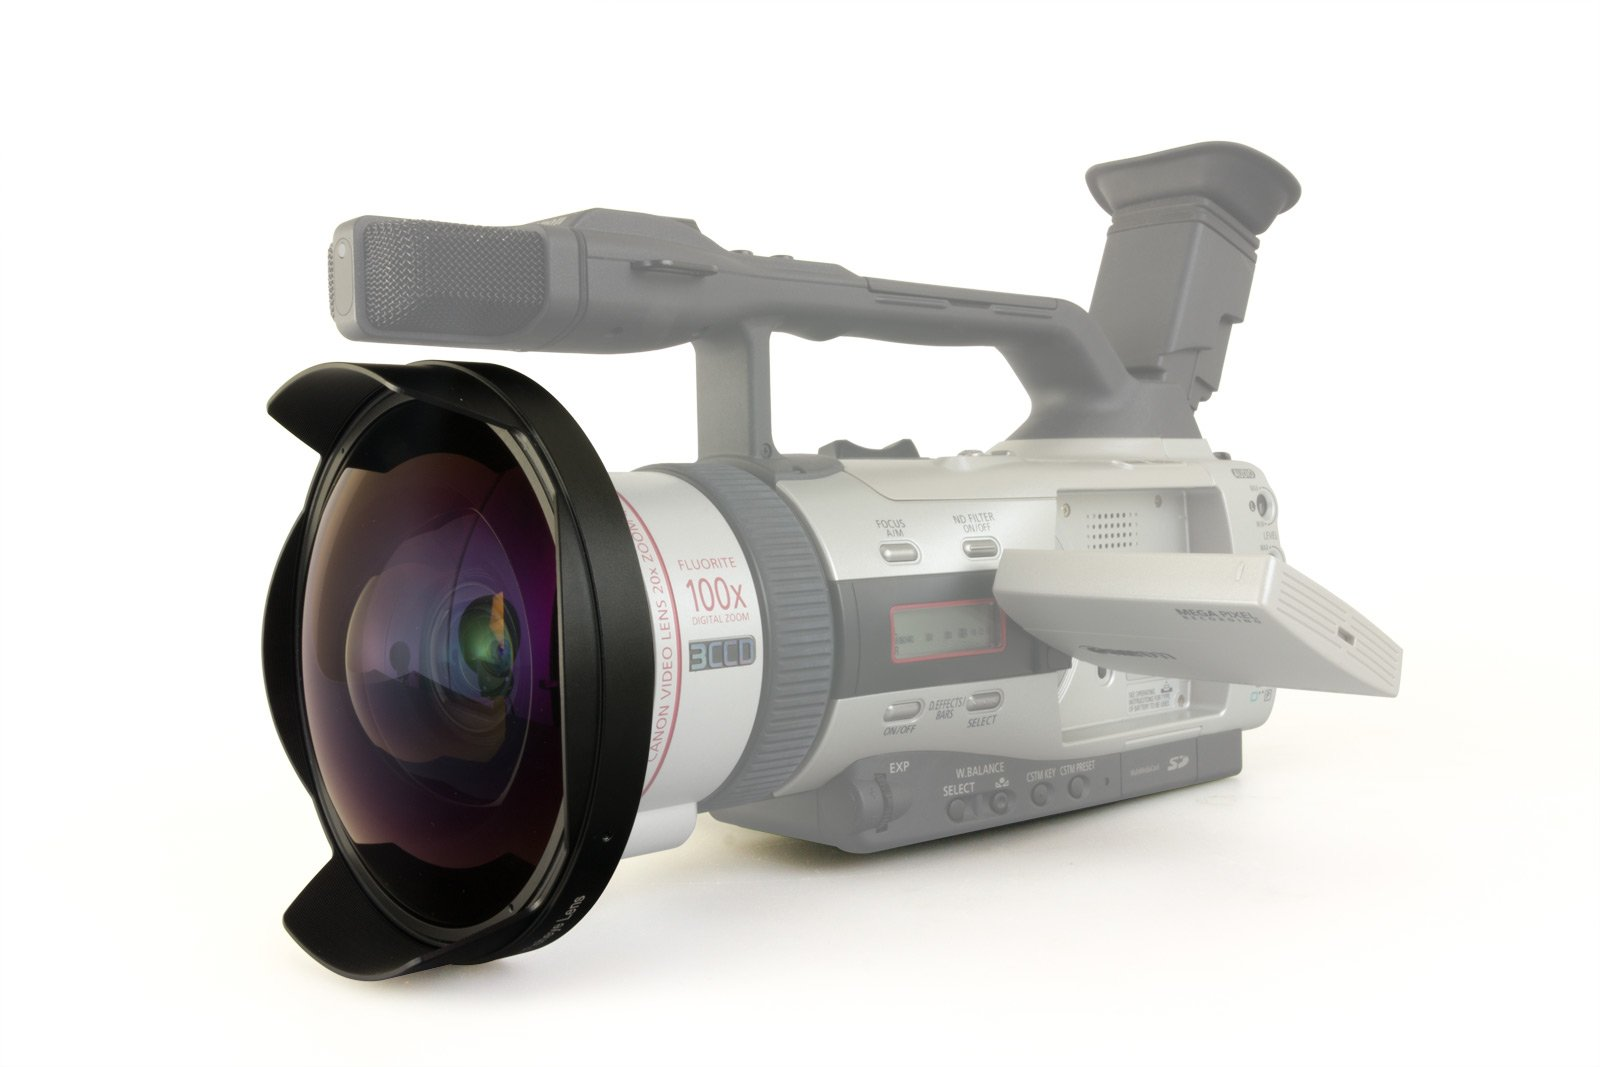 Opteka Titanium Series 52mm 0.3X HD Ultra Fisheye Lens for Sony DCR-TRV900, DCR-VX1000, DSR-200 and DSR-PD100 Video Camcorders by Opteka